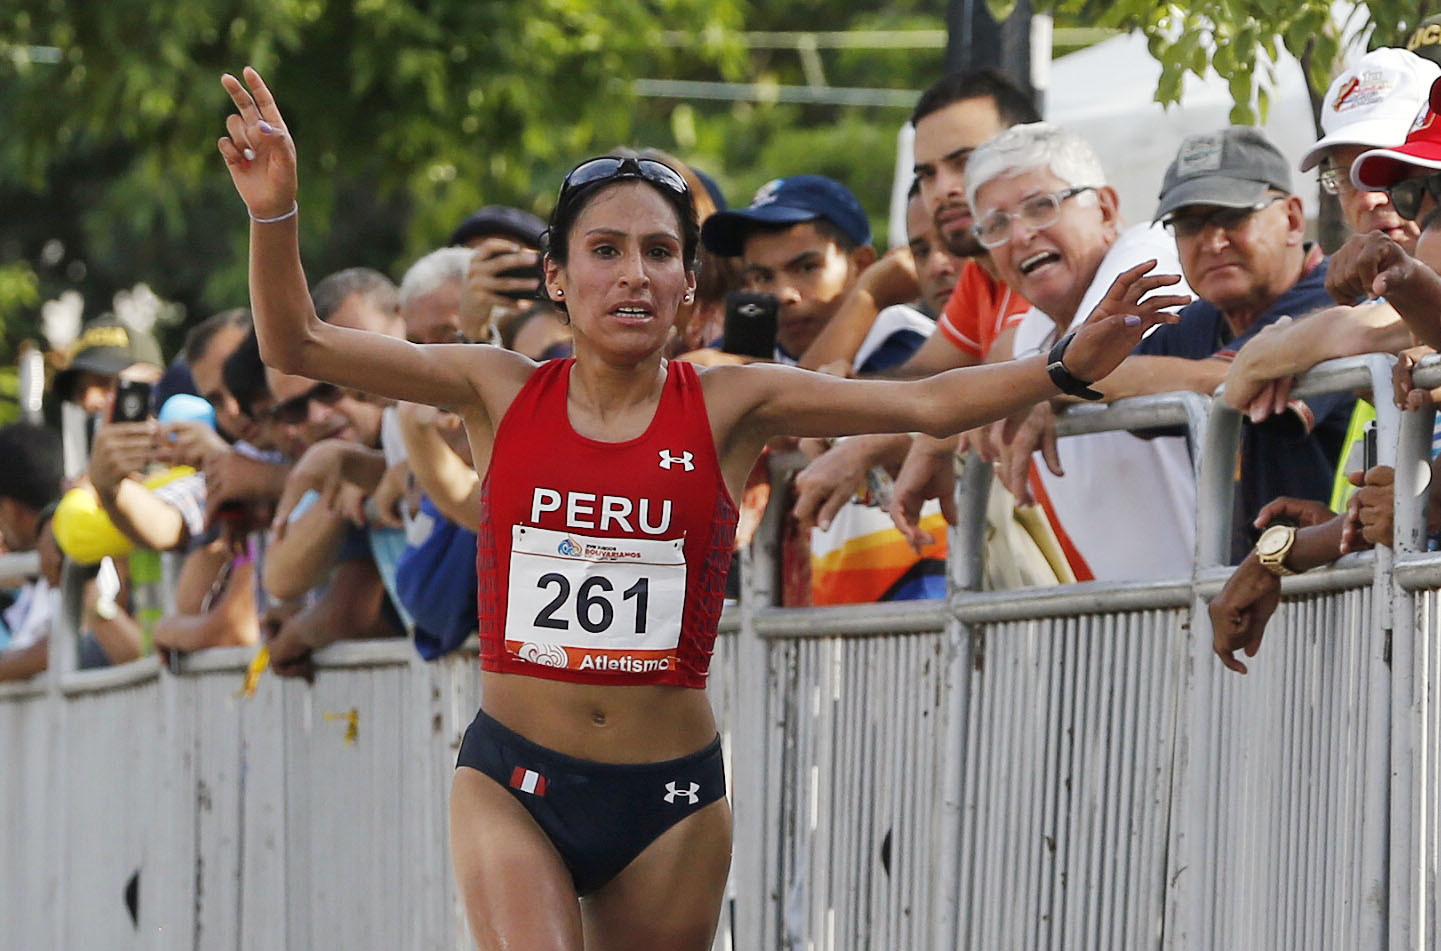 Gladys Tejeda won the Pan American marathon title at Toronto 2015 but was then disqualified after testing positive for a banned diuretic ©Getty Images